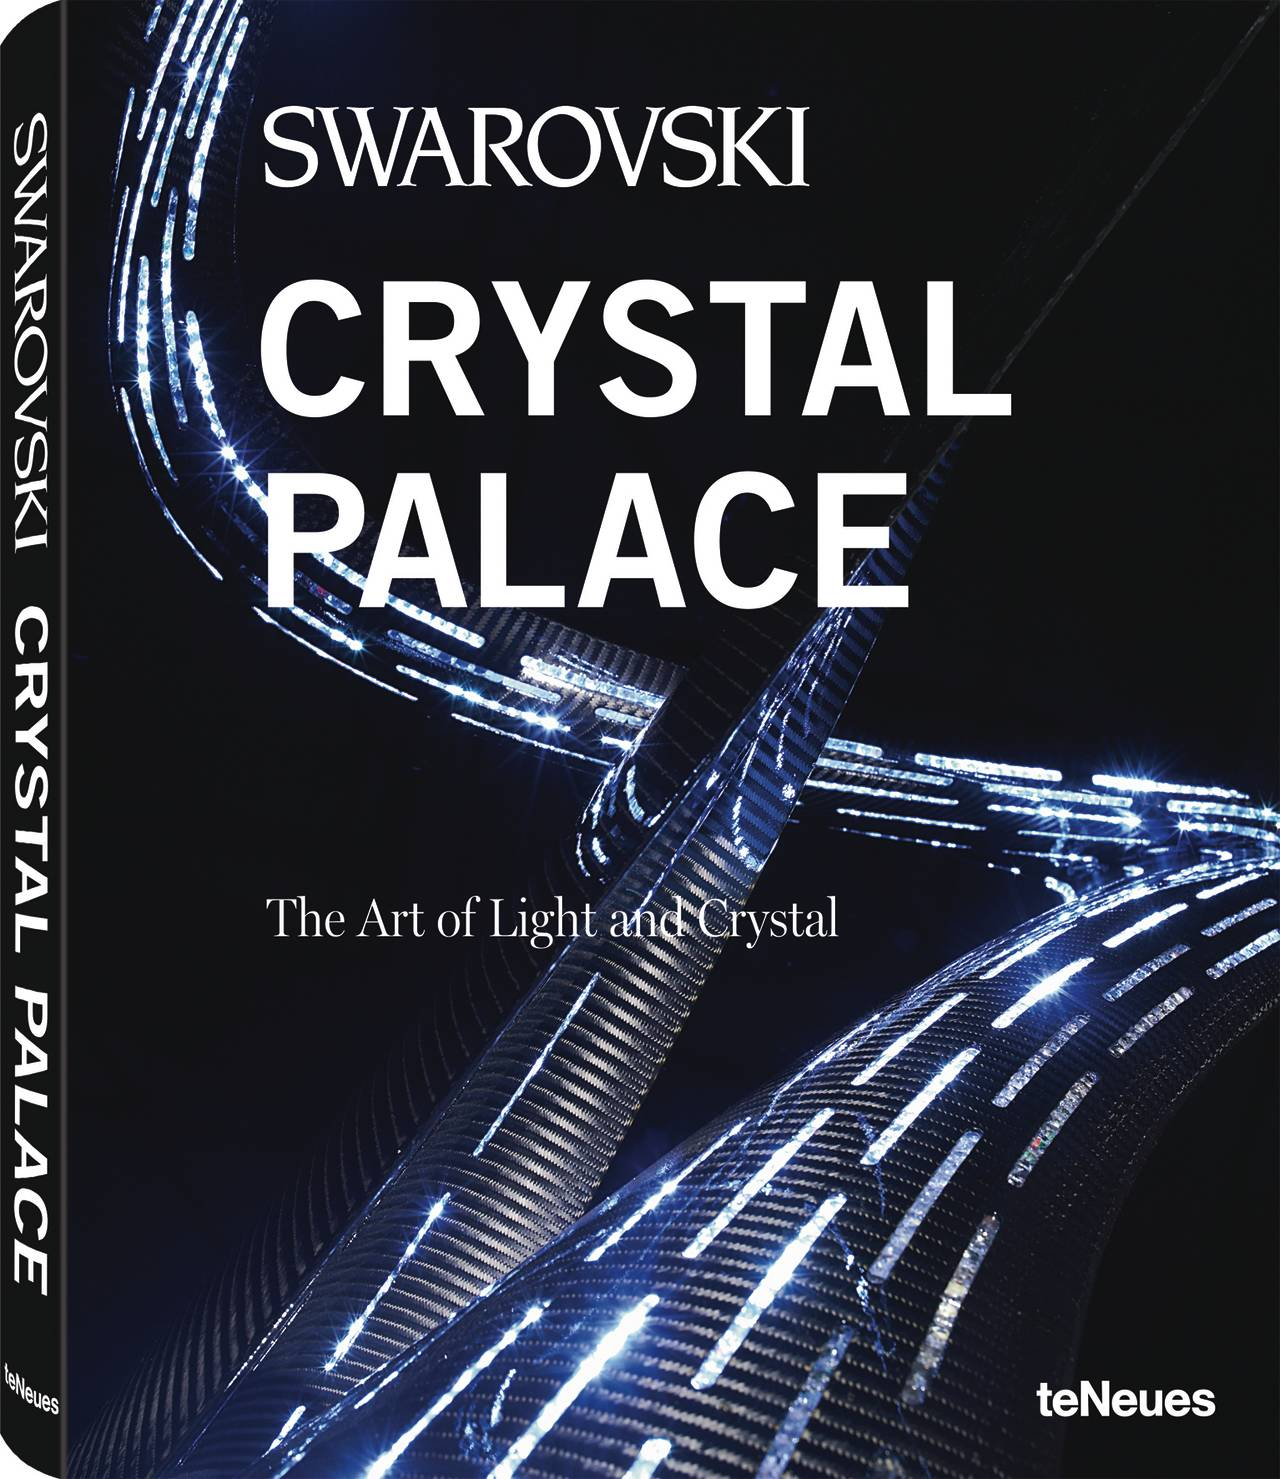 © SWAROVSKI CRYSTAL PALACE - The Art of Light and Crystal, Black + Lite, published by teNeues, www.teneues.com. Photo © leotorri.it